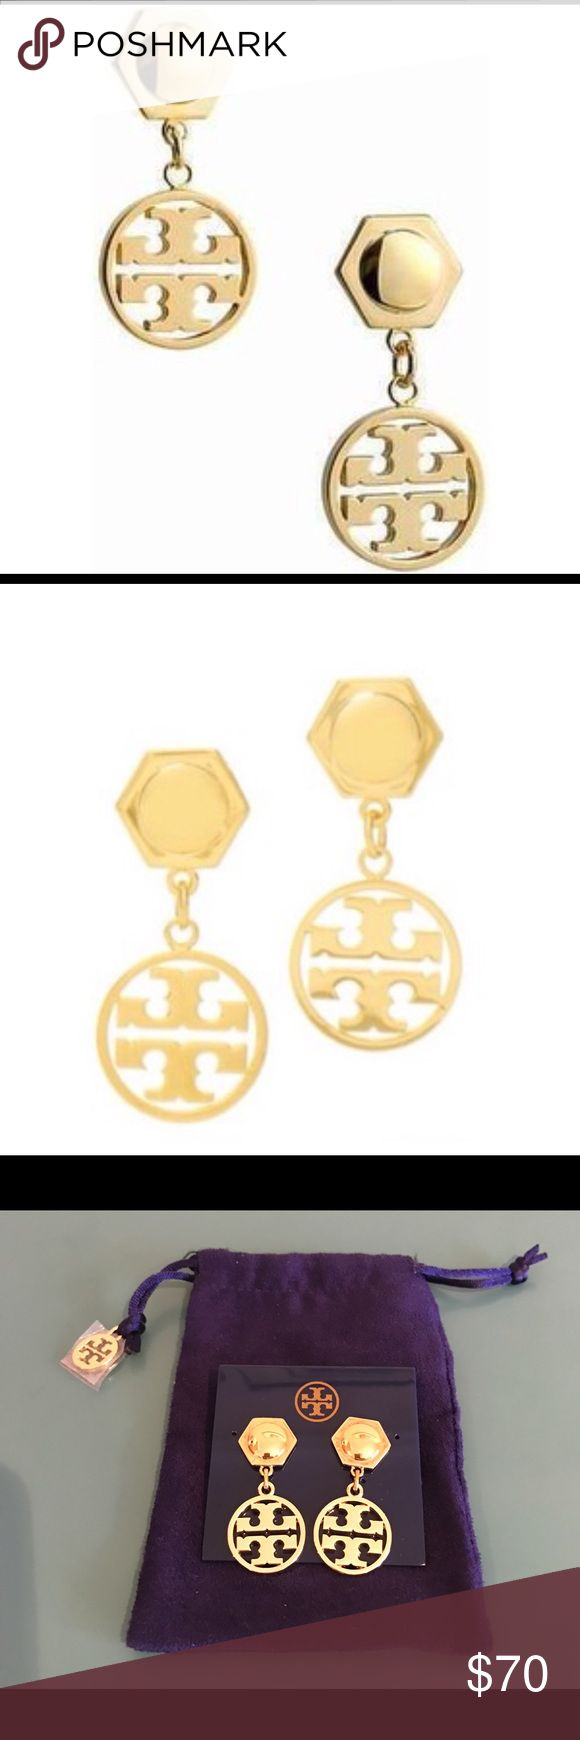 "Tory Burch Circle Logo Drop Earring Hurry before I change my mind! 😂 These stunning earrings are so chic and so very effortless. A hexagonal stud is combined with the iconic double T, making it classy yet edgy. Understated and beautiful, this is the perfect accessory for everyday. 💫16k gold-plated metal. 💫Post back closure for pierced ears 💫Length:1.5"" 💫Width: .75"" 💫Dust bag is included 🌟FUN FACT: Tamra Barney was seen wearing these on the Real Housewives of Orange County. 🍊 Tory…"